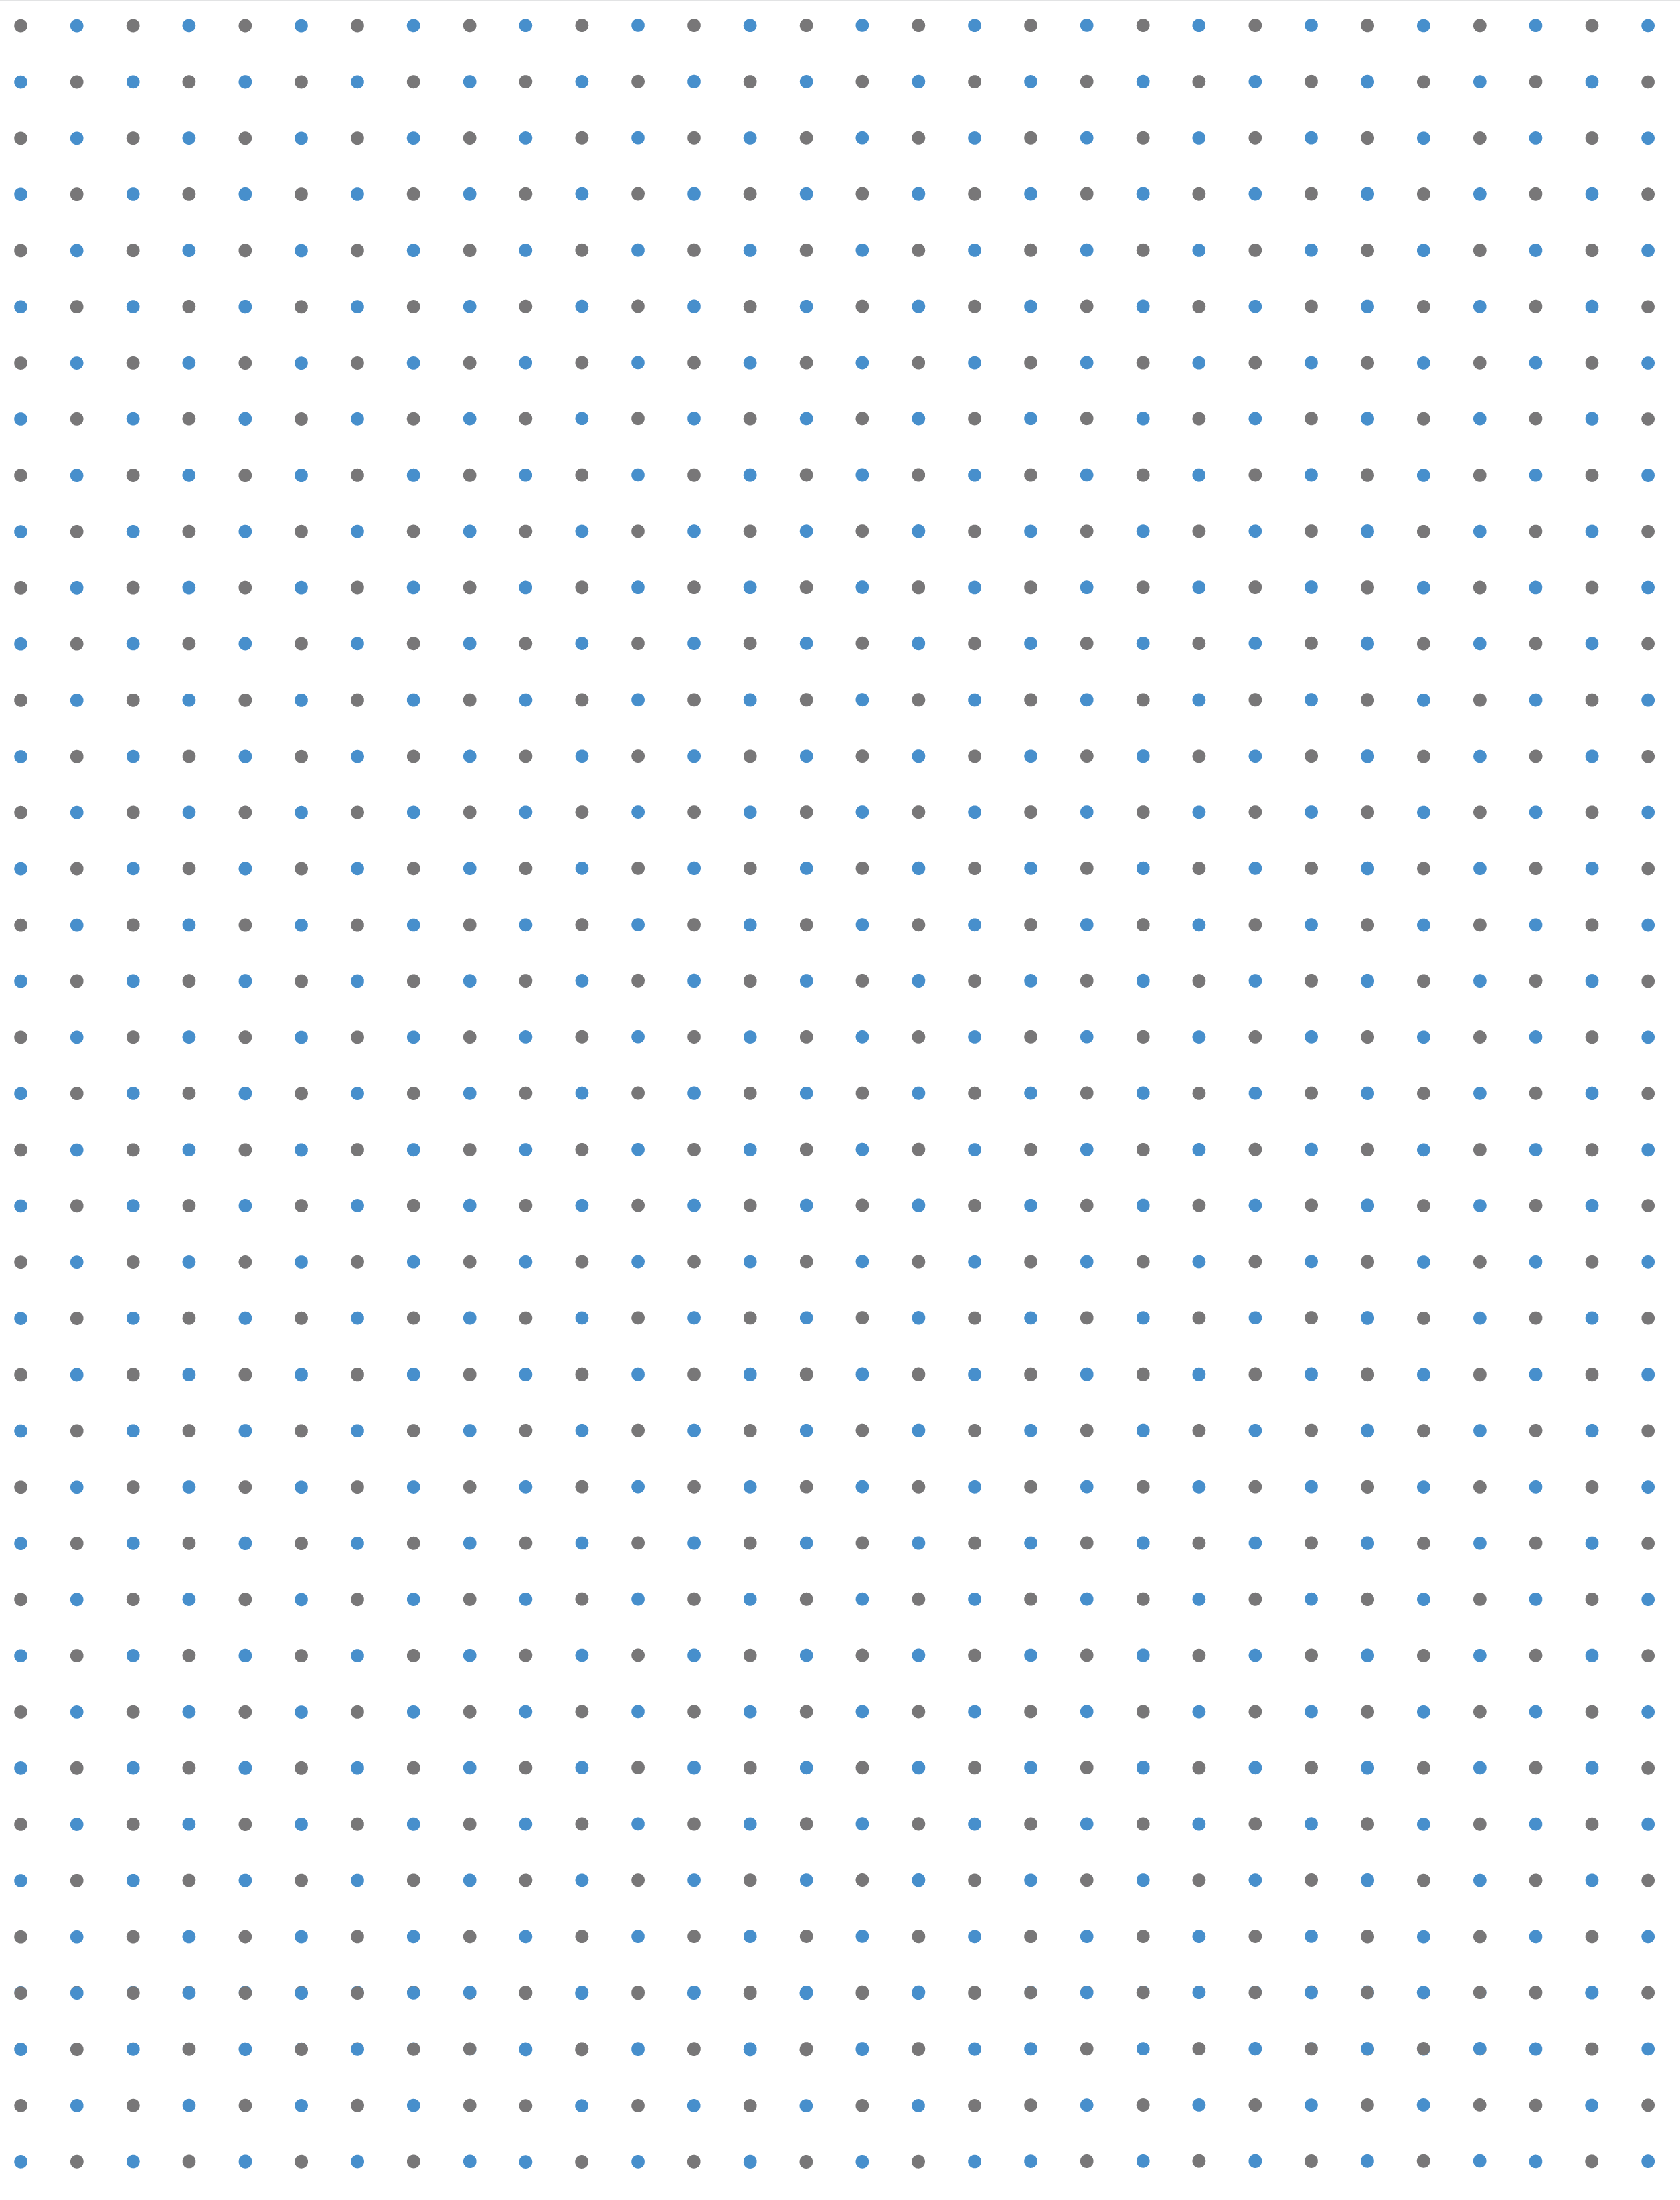 This is a picture of Free Printable Dot Grid Paper in svg